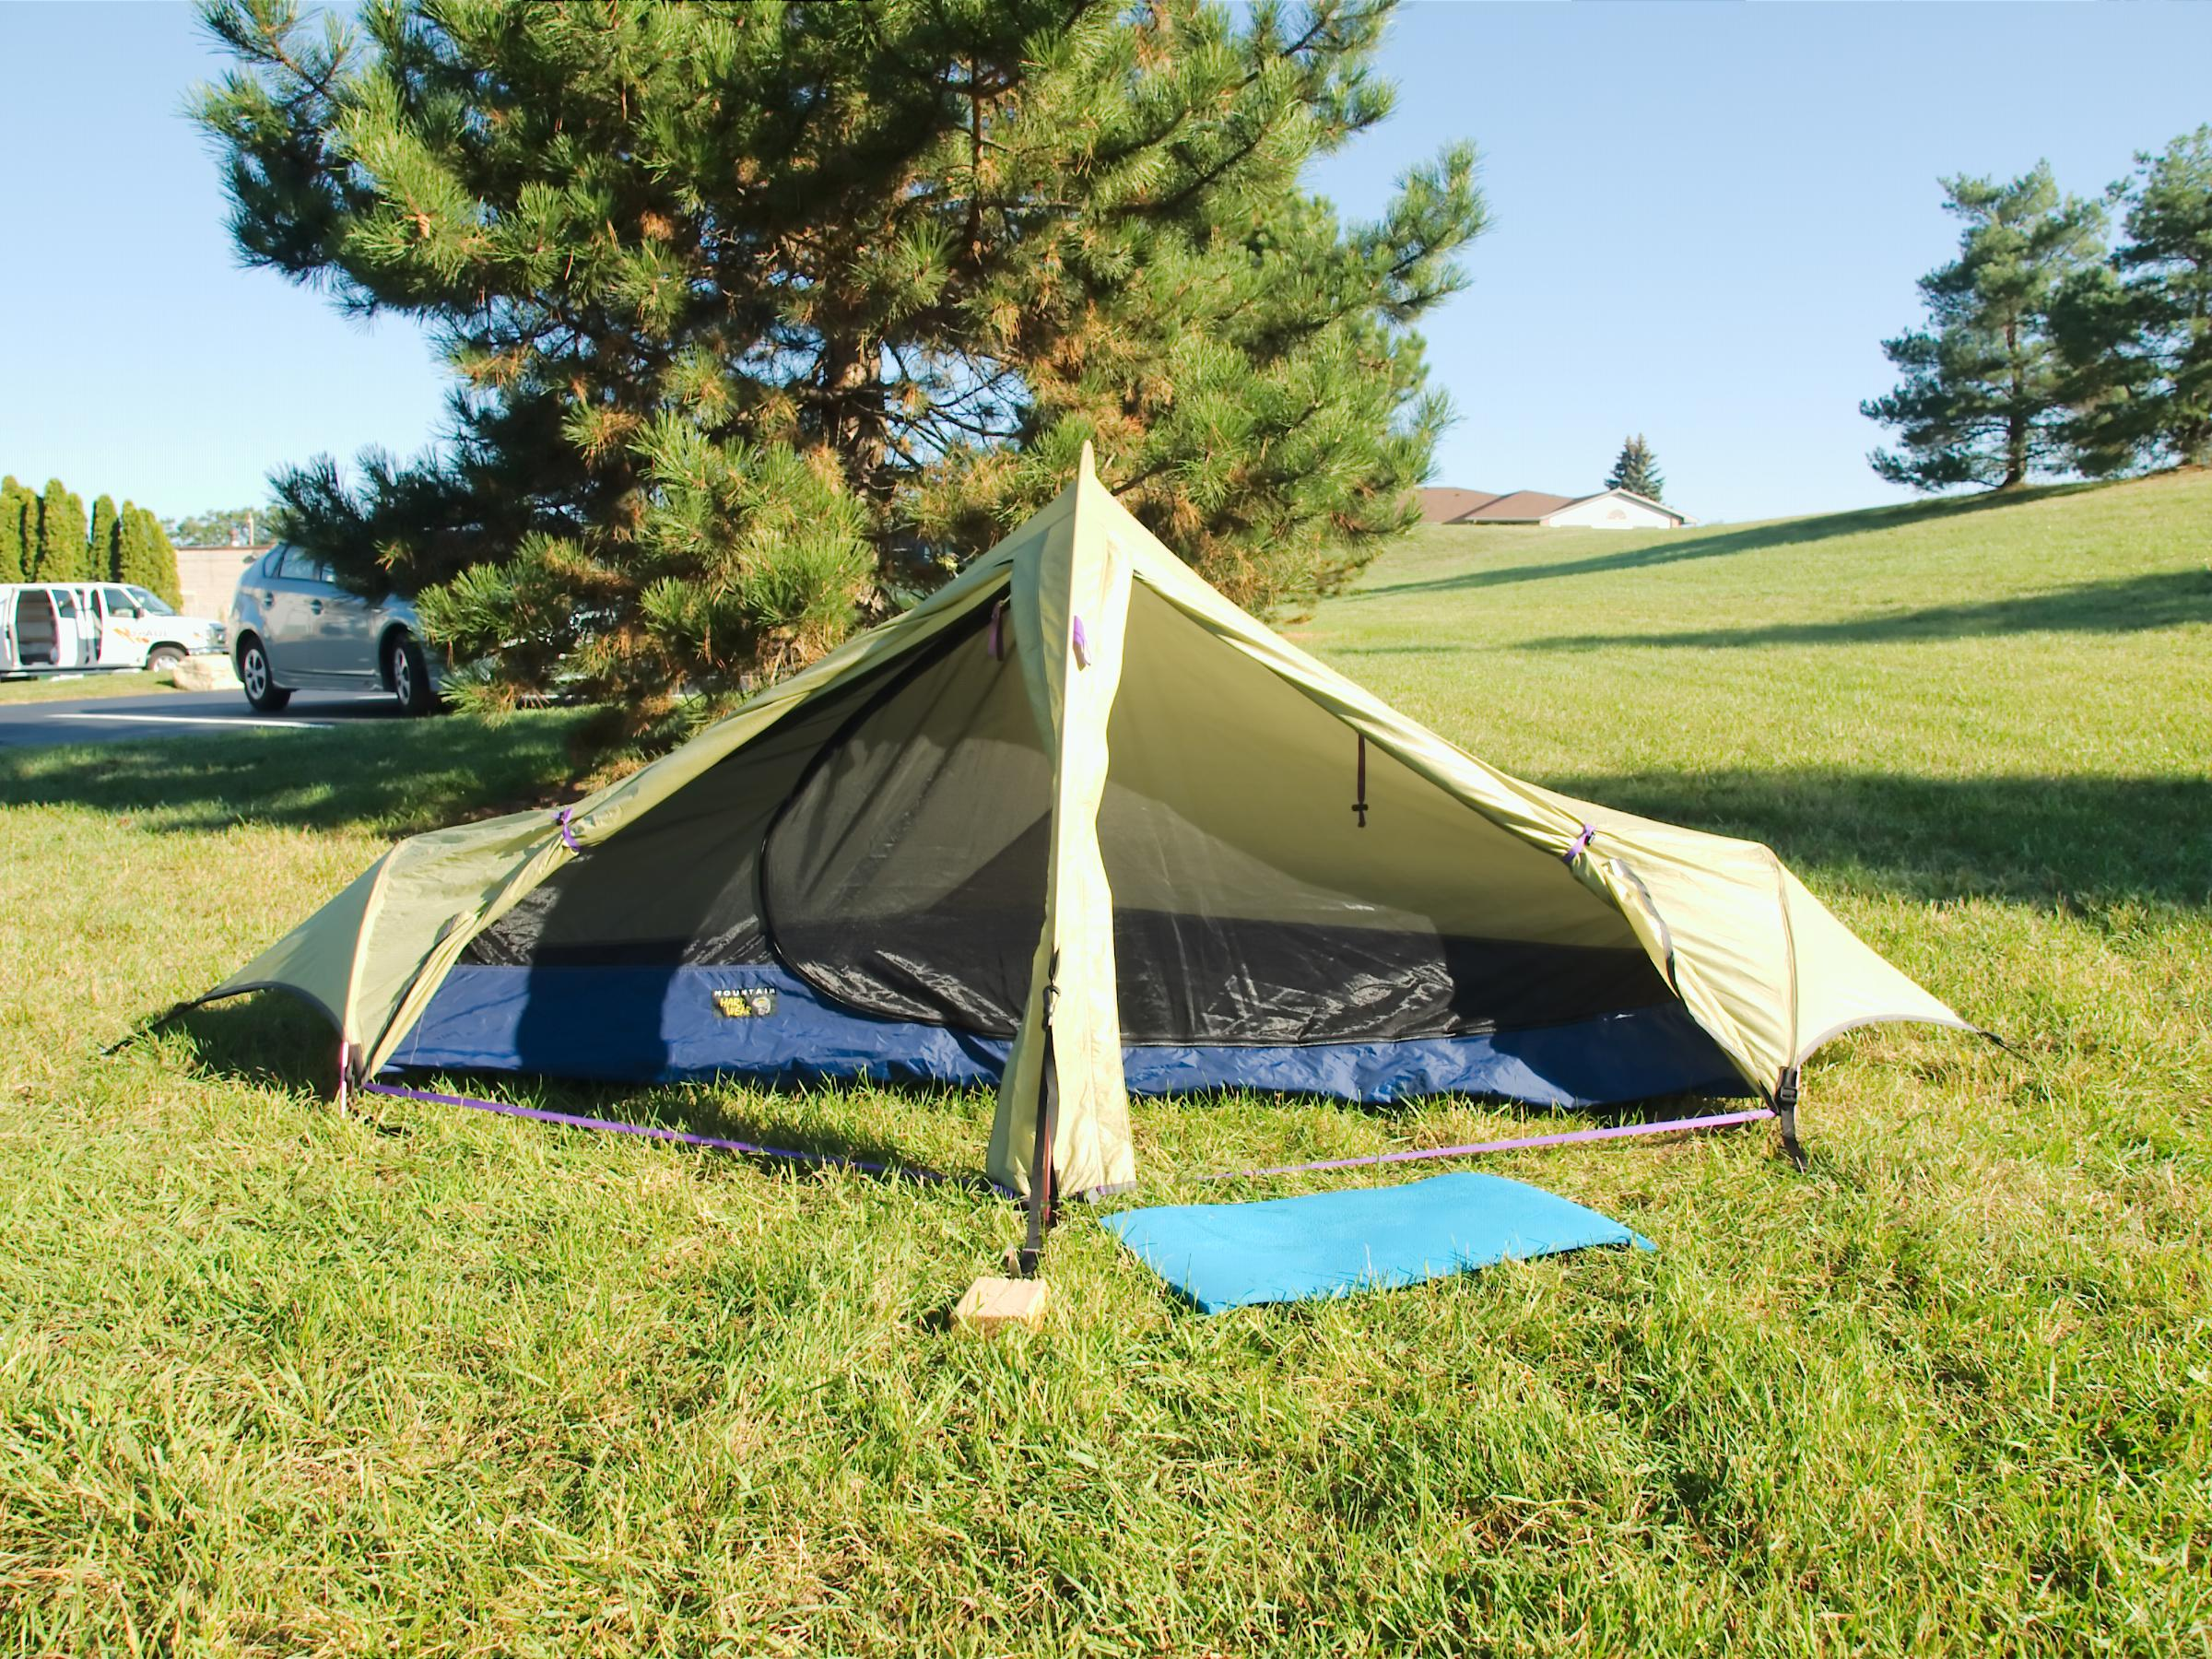 The tunnel tent will erect fine with good anchors at the vestibules/ends I have used tree roots/logs/rocks. Very wind resistant I seldom ... & BWCA Hilleberg Boundary Waters Gear Forum